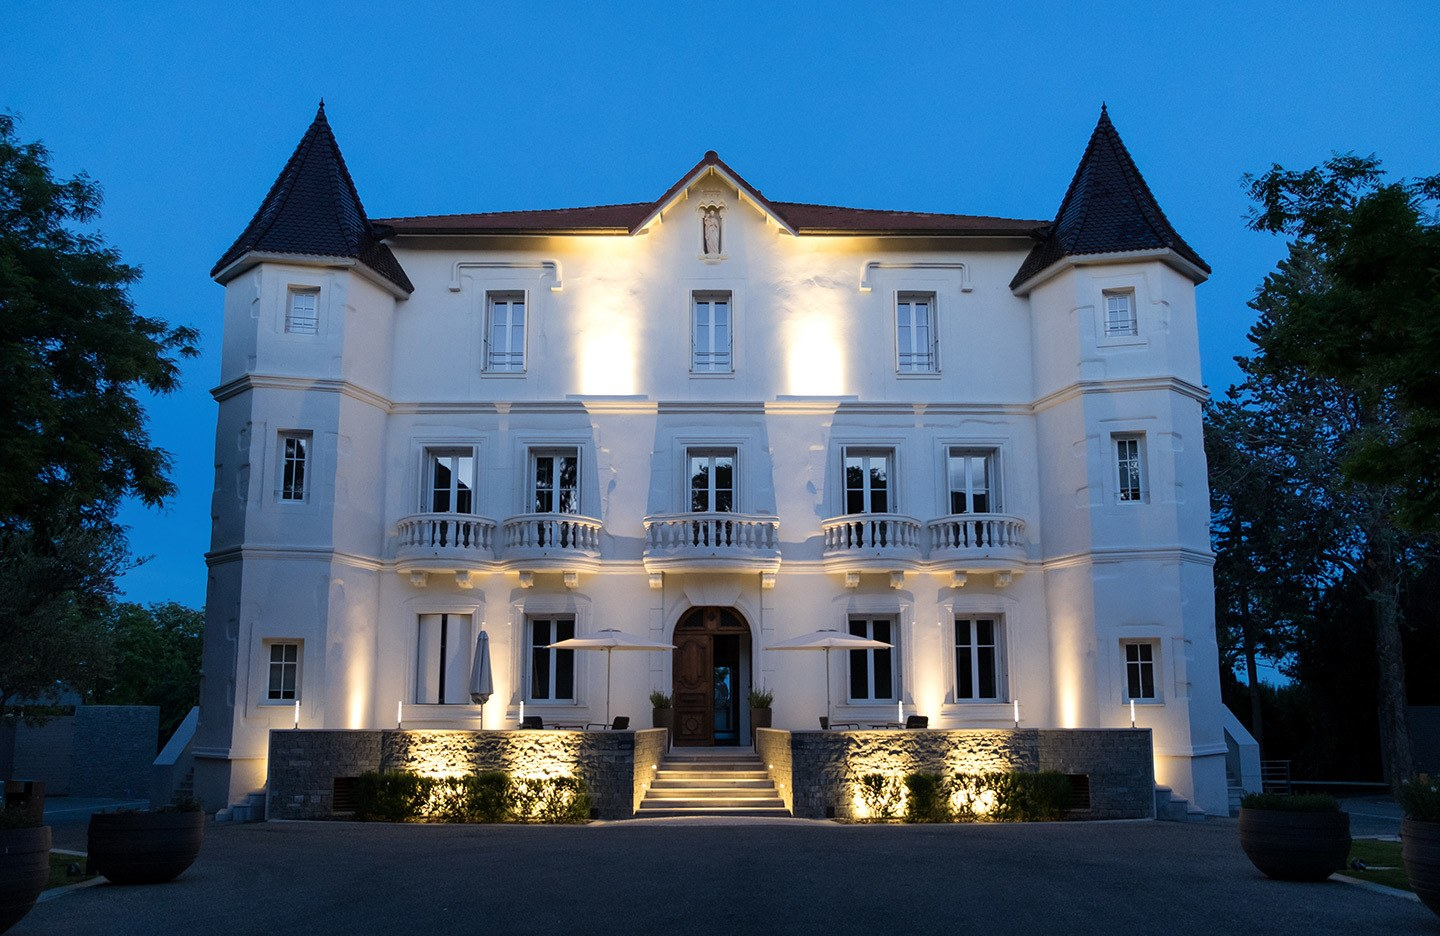 Château Autignac by night